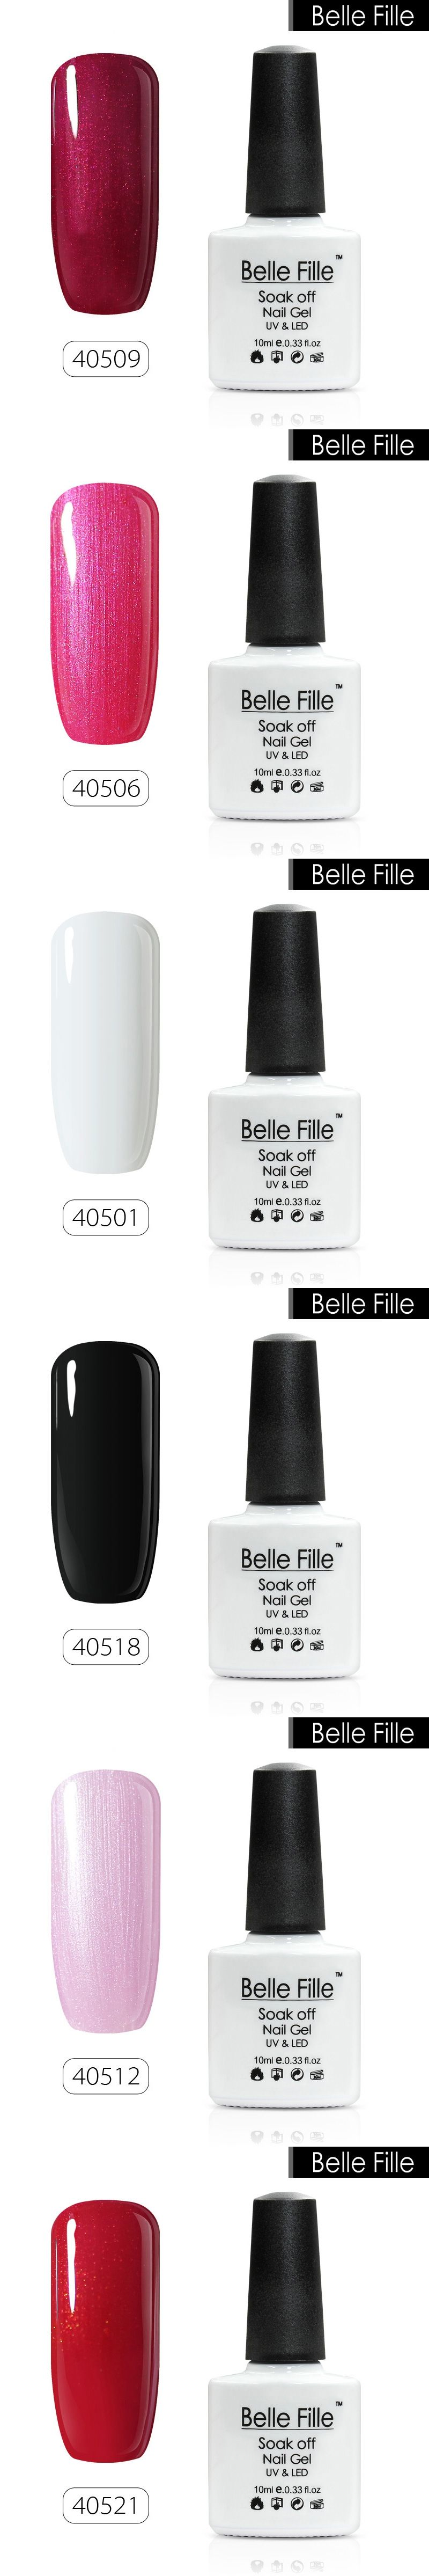 BELLE FELLE 10ml Color UV Gel Nail Polish clear coat salon nail gel ...